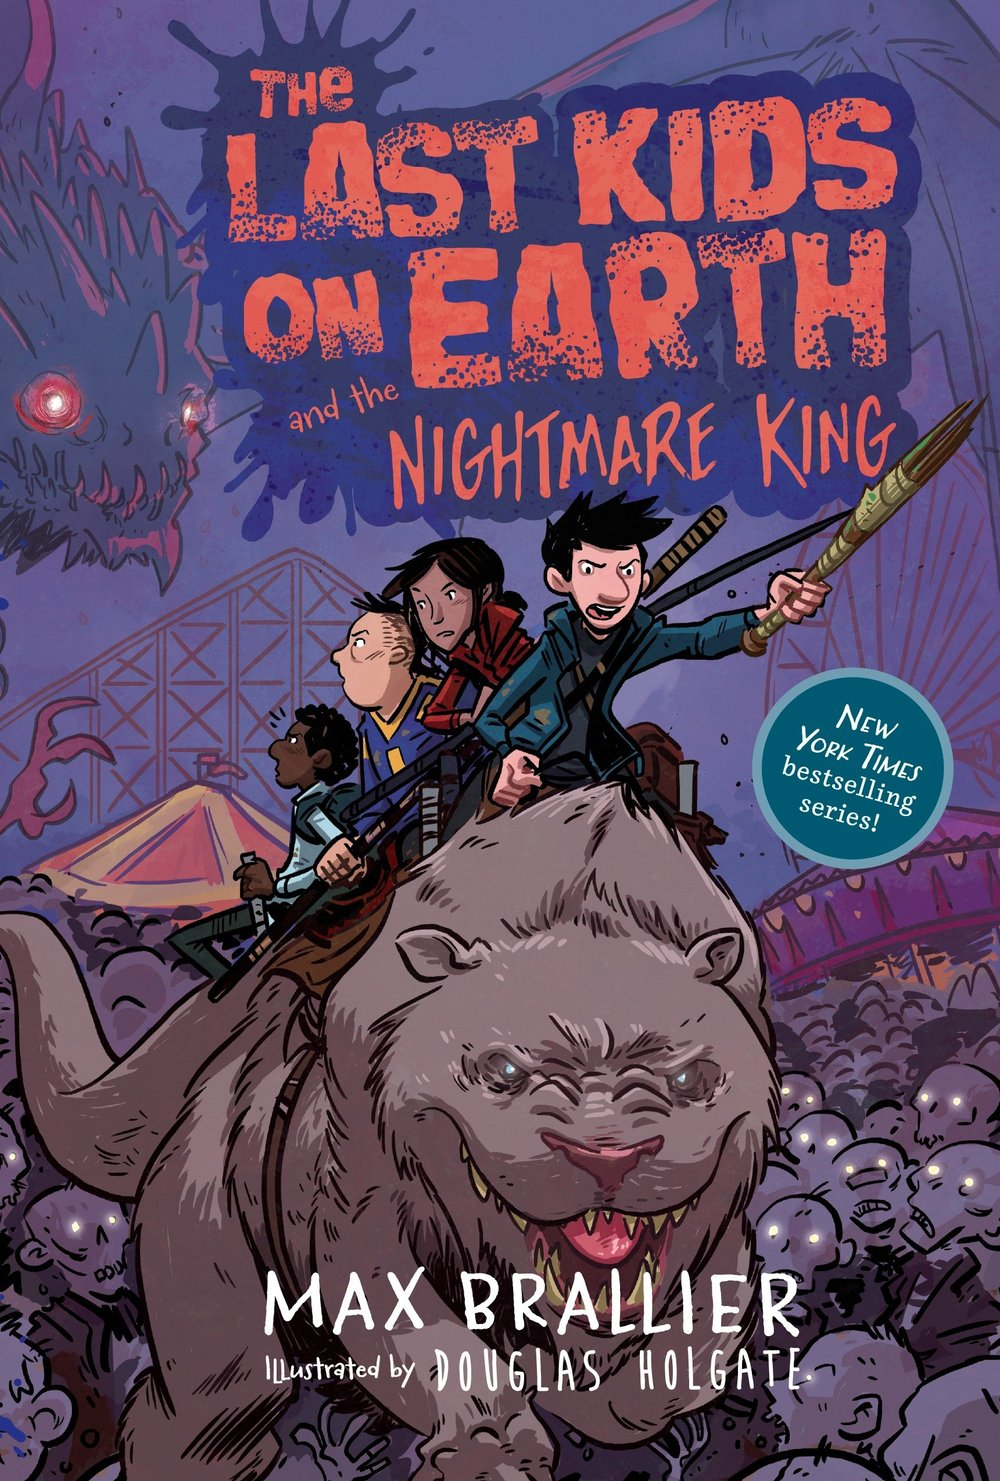 The Last Kids on Earth and the Nightmare King (1).jpg